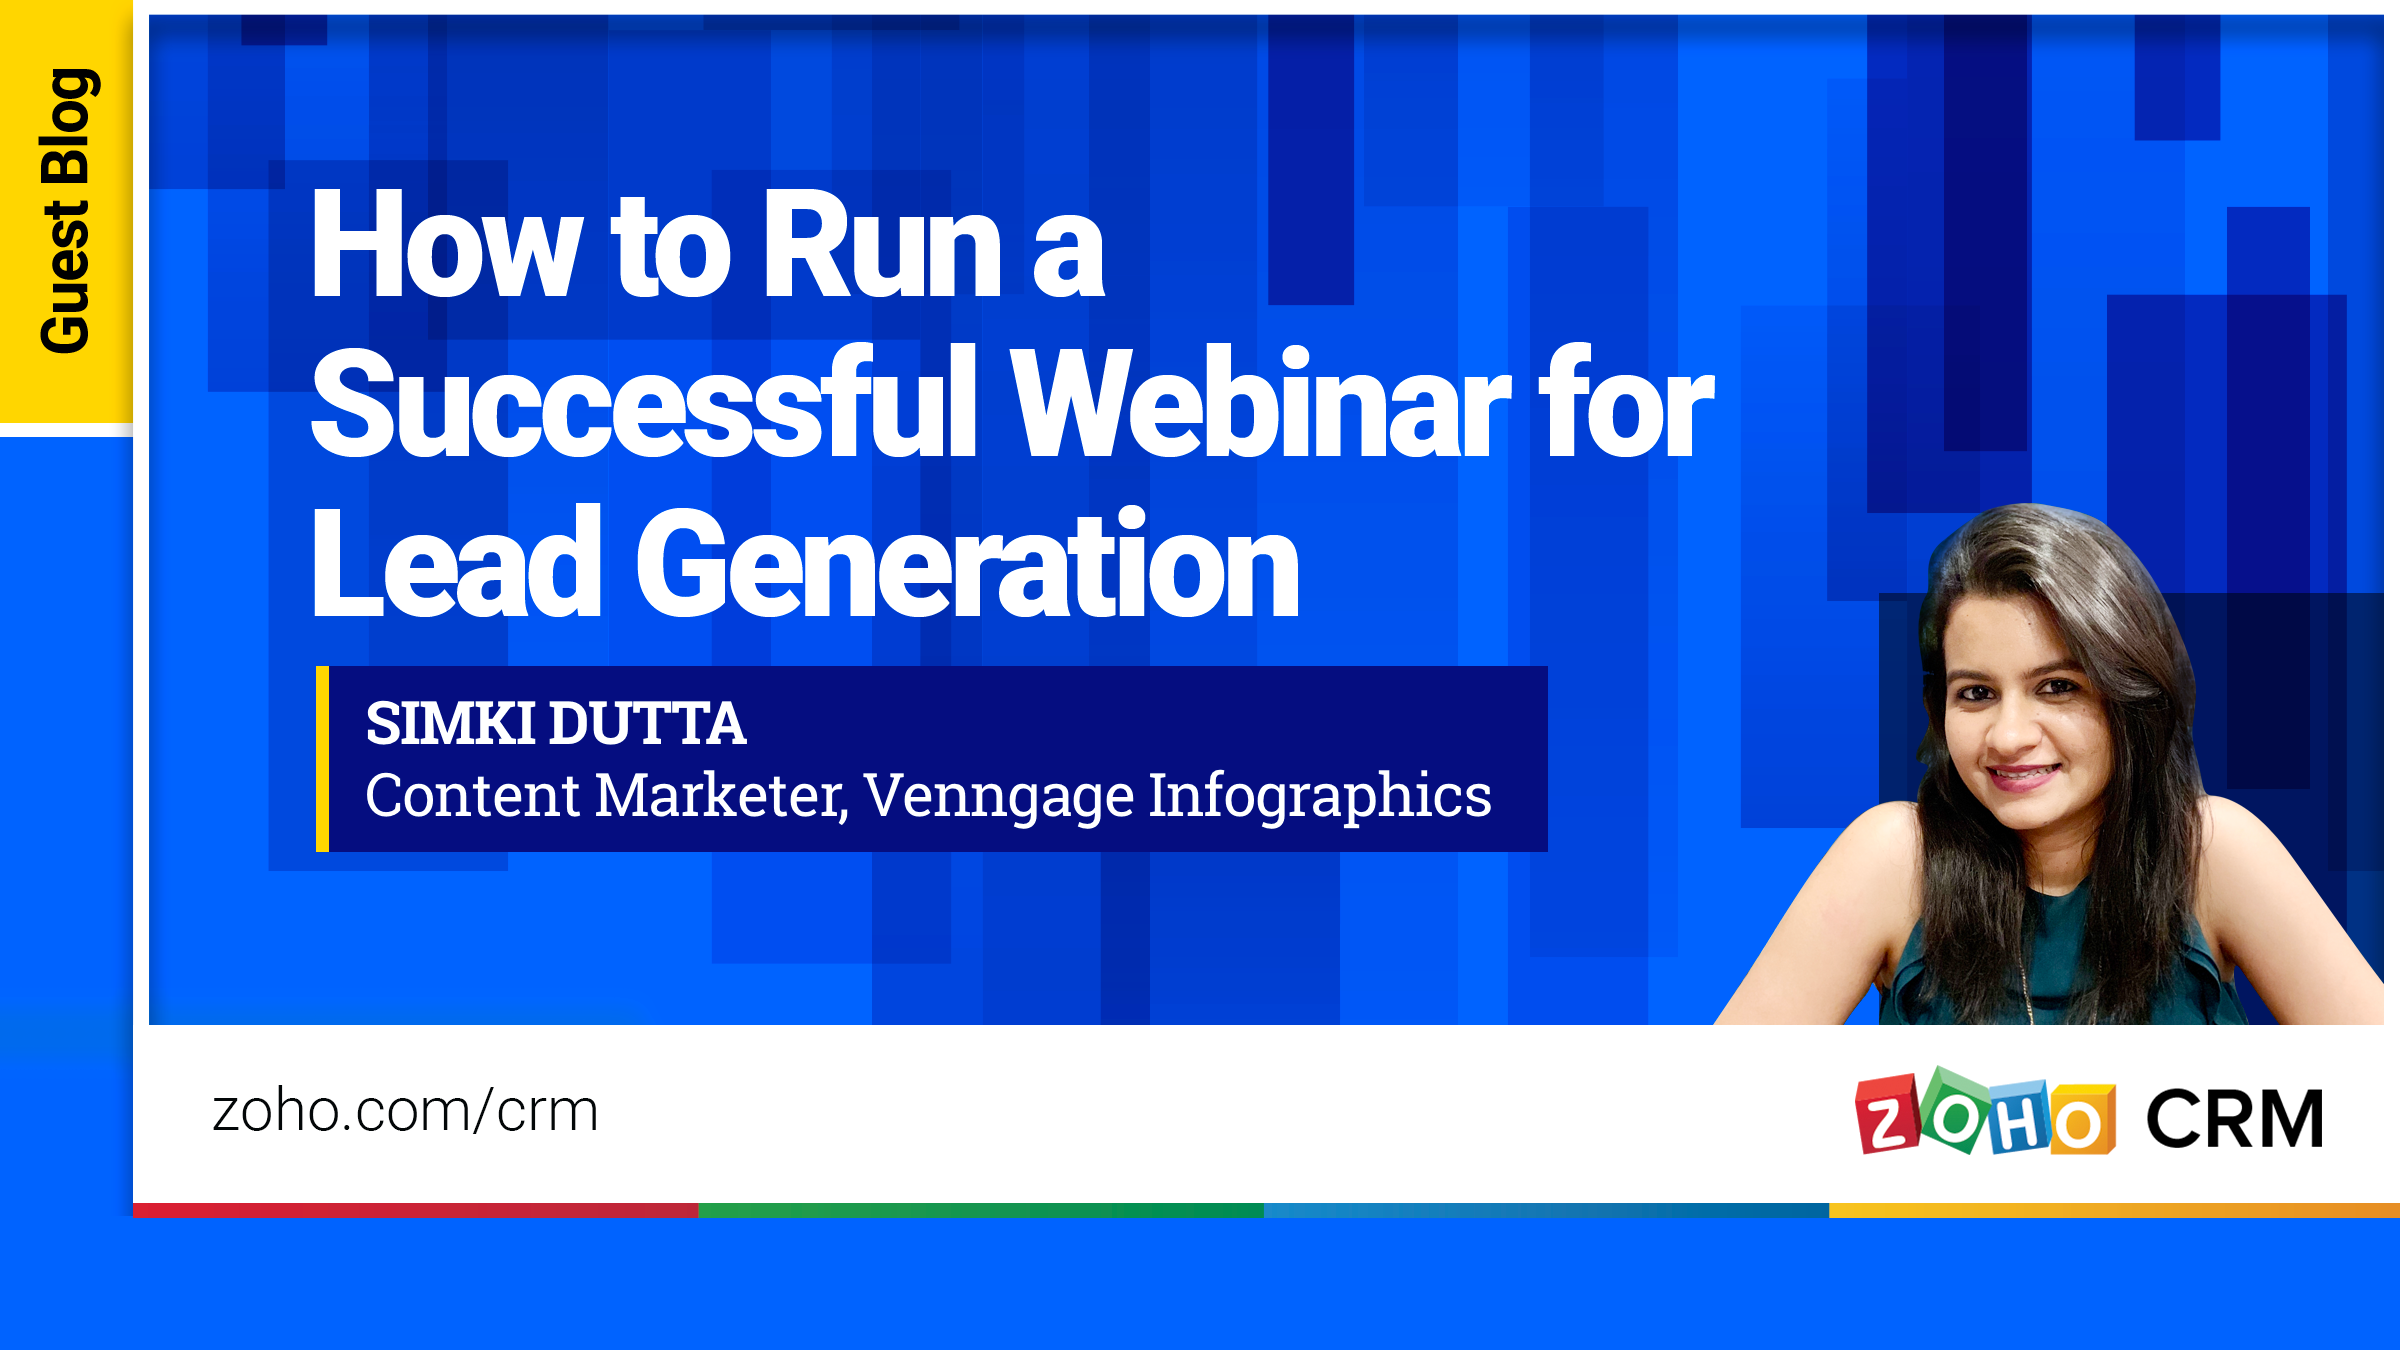 How to Run a Successful Webinar for Lead Generation